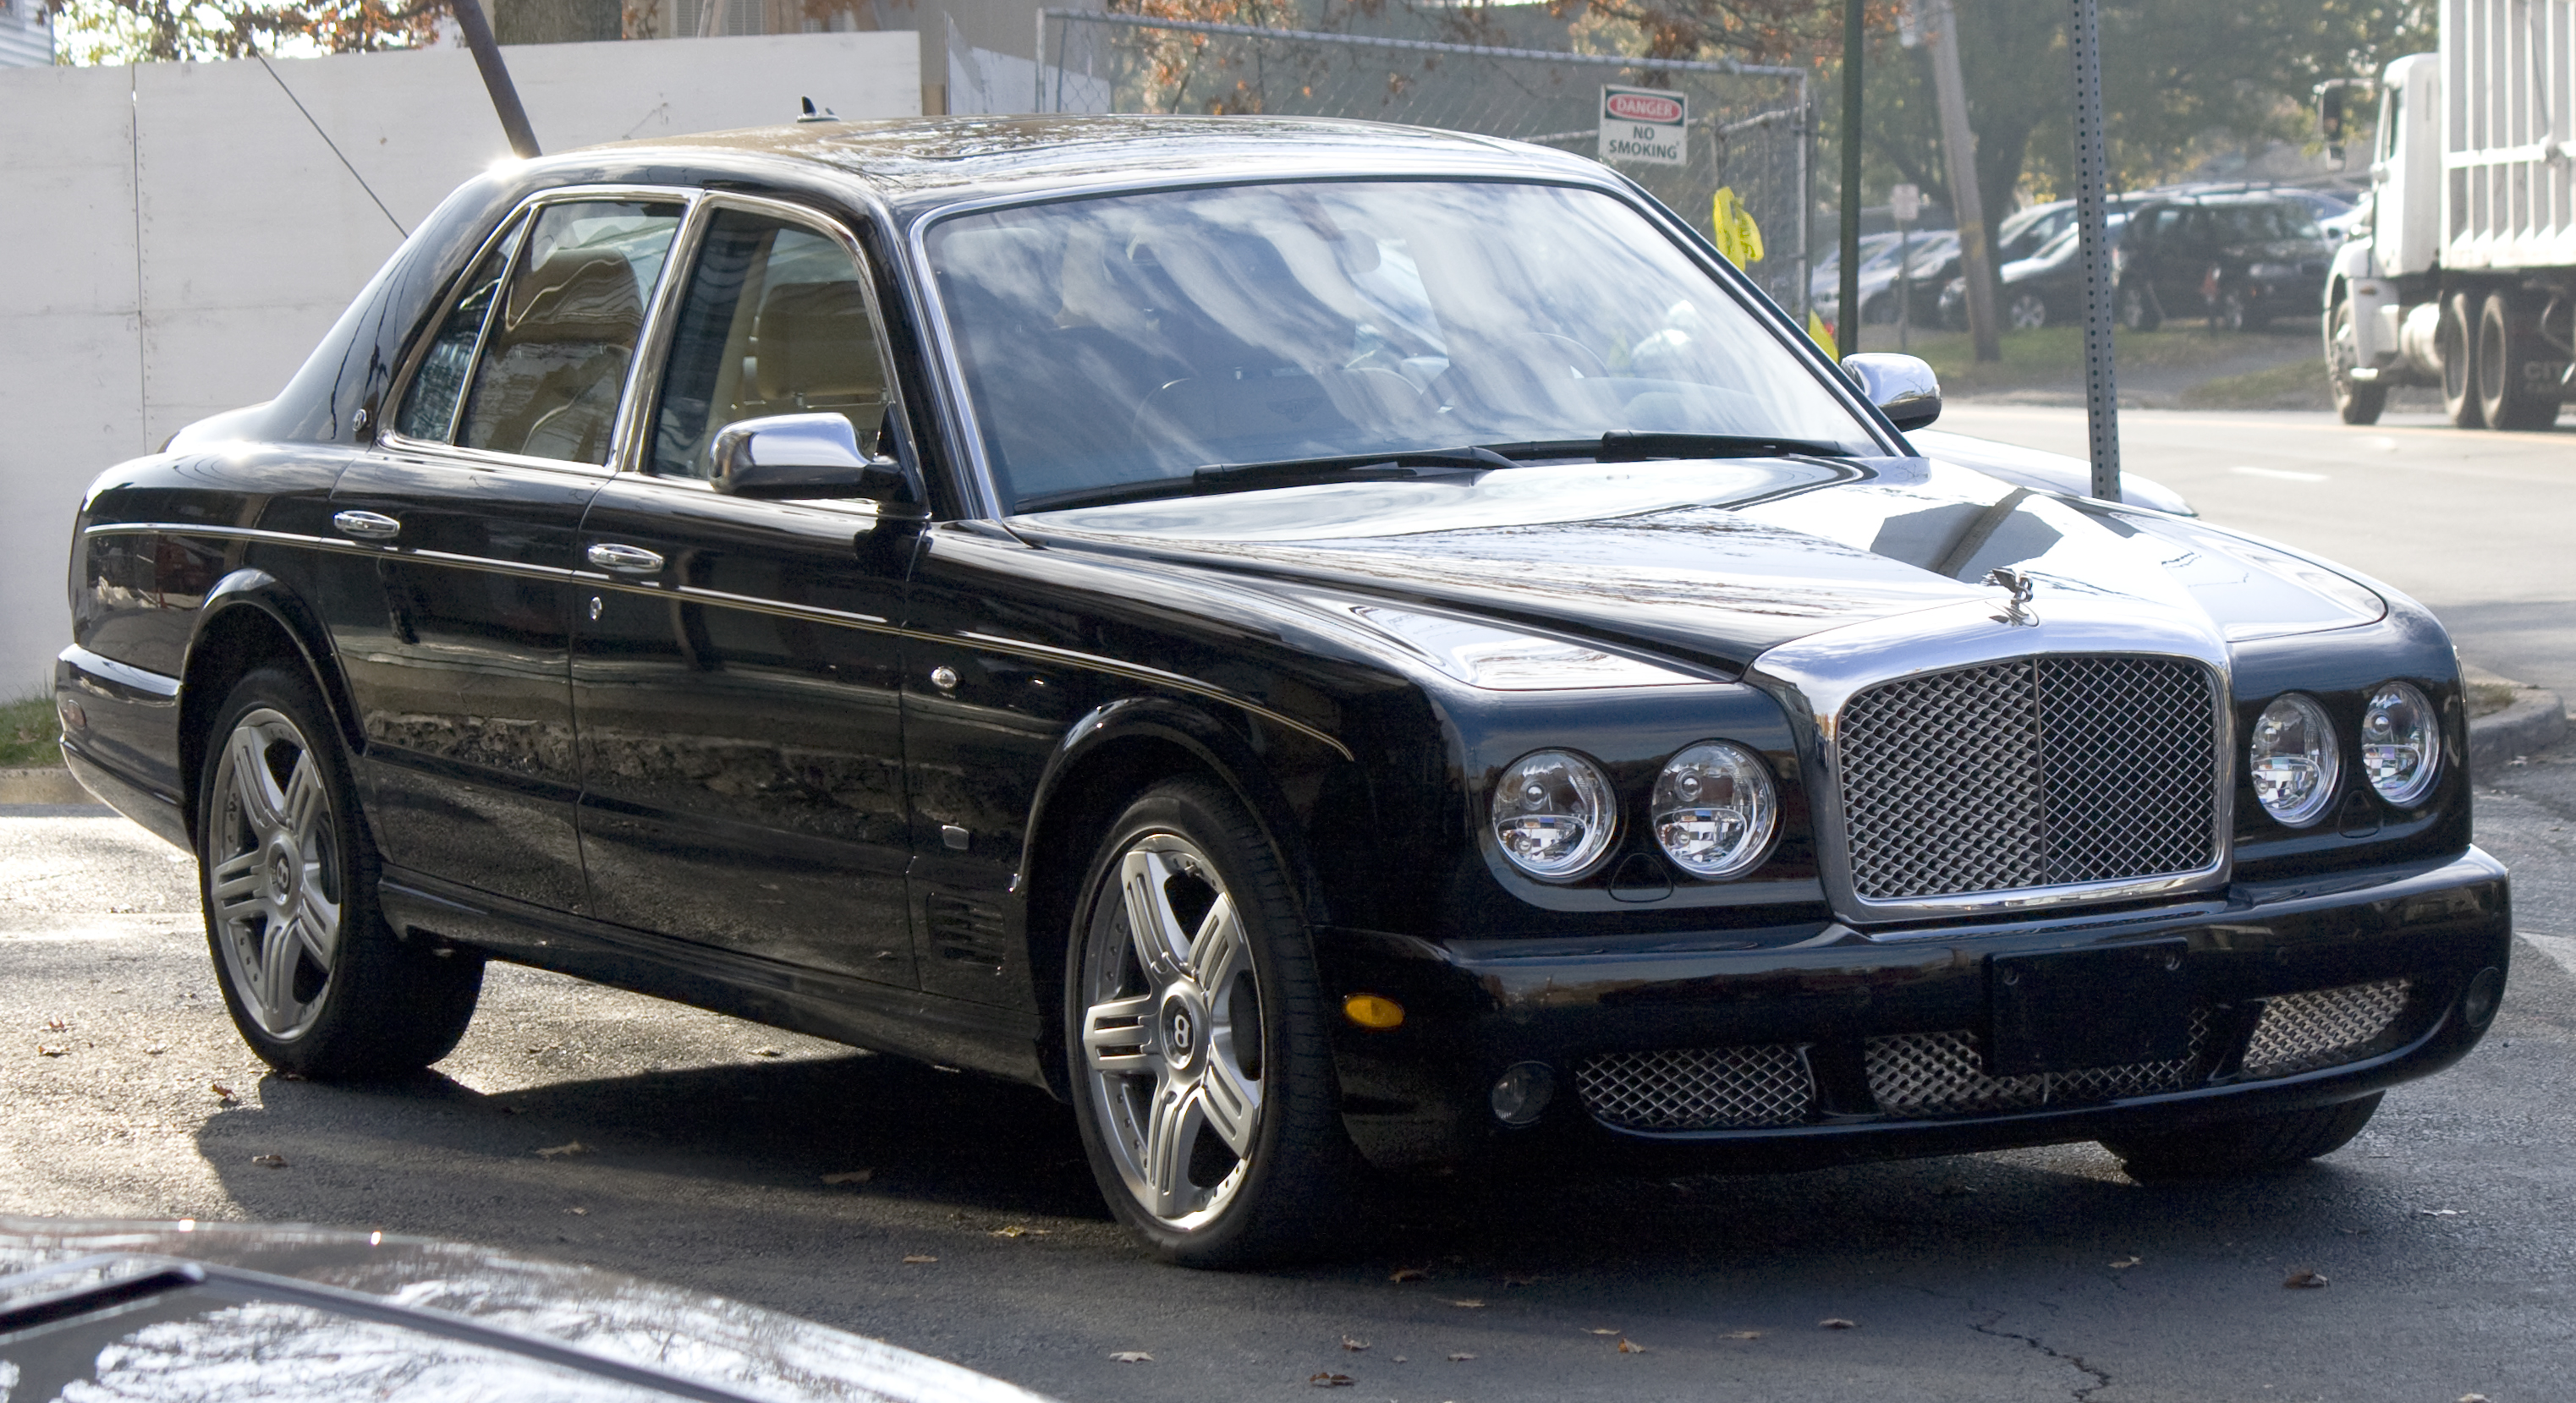 bentley arnage i 2002 wallpaper #6